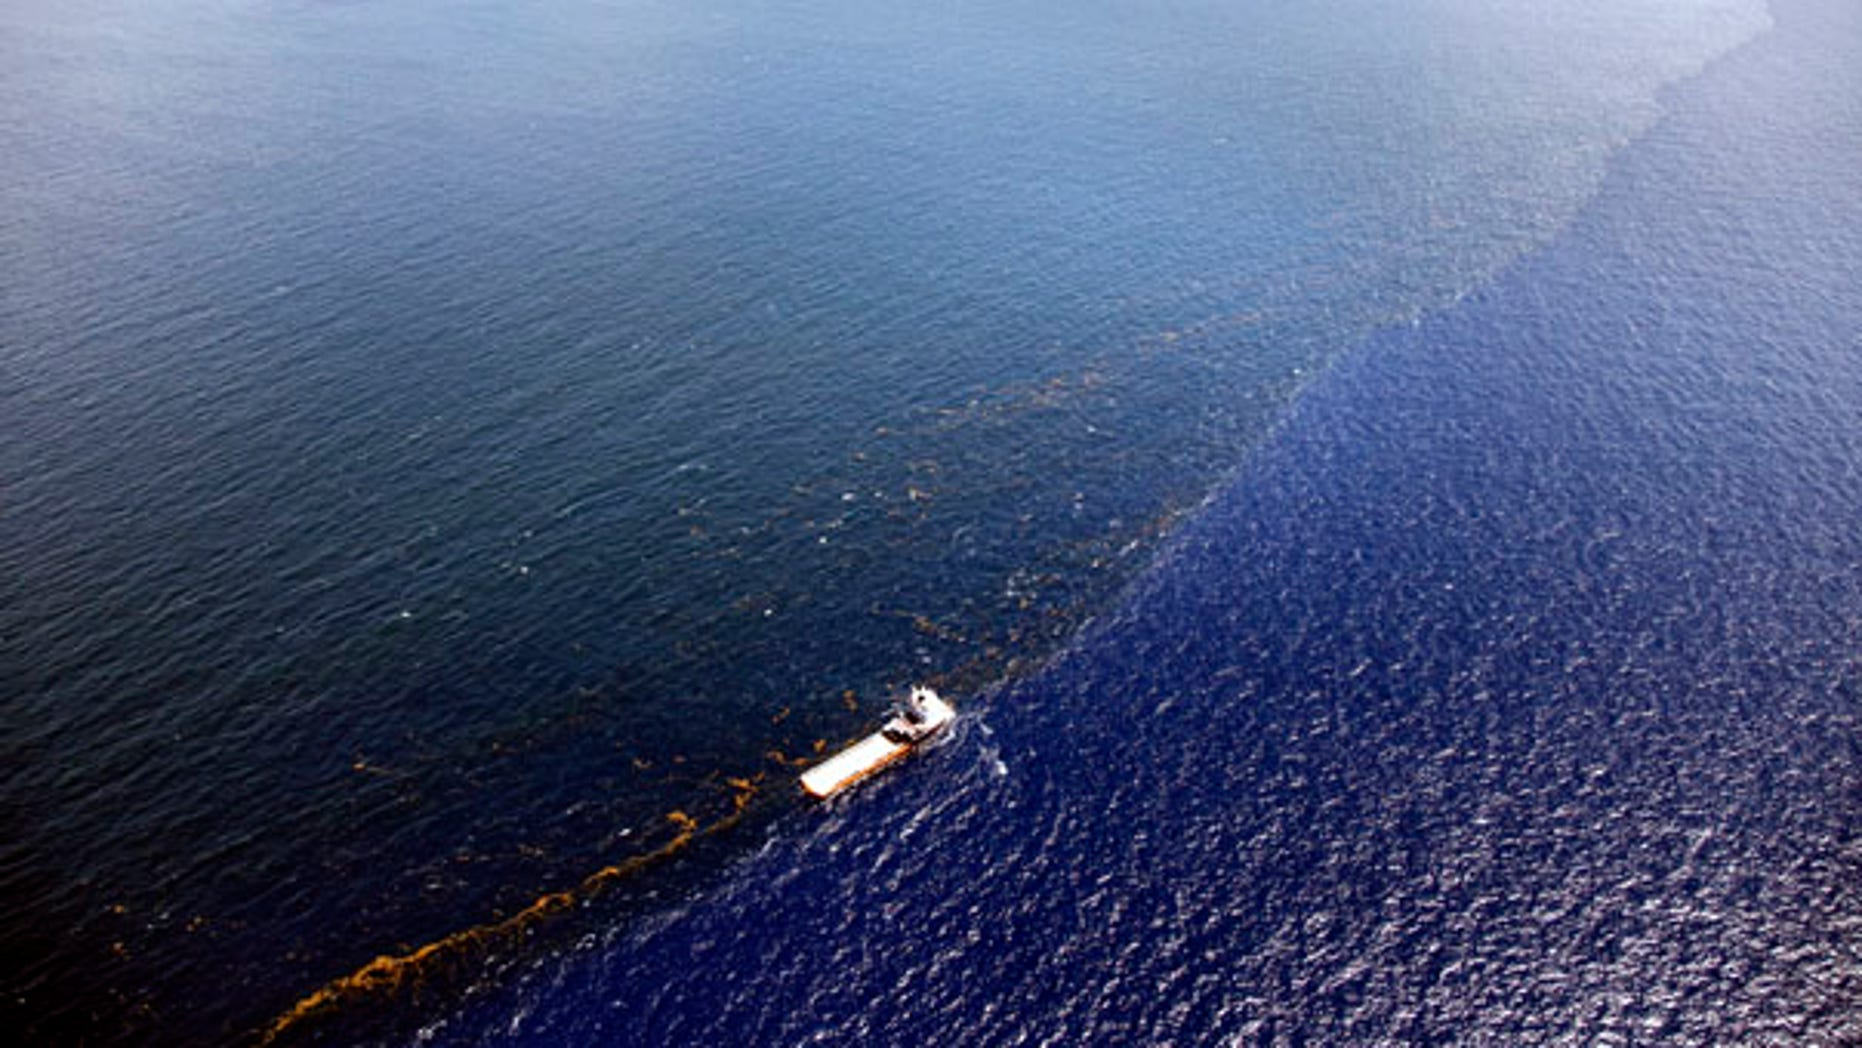 July 26: A response vessel is seen along a line of emulsified oil between the Deepwater Horizon oil spill site and the Louisiana coast in the Gulf of Mexico.